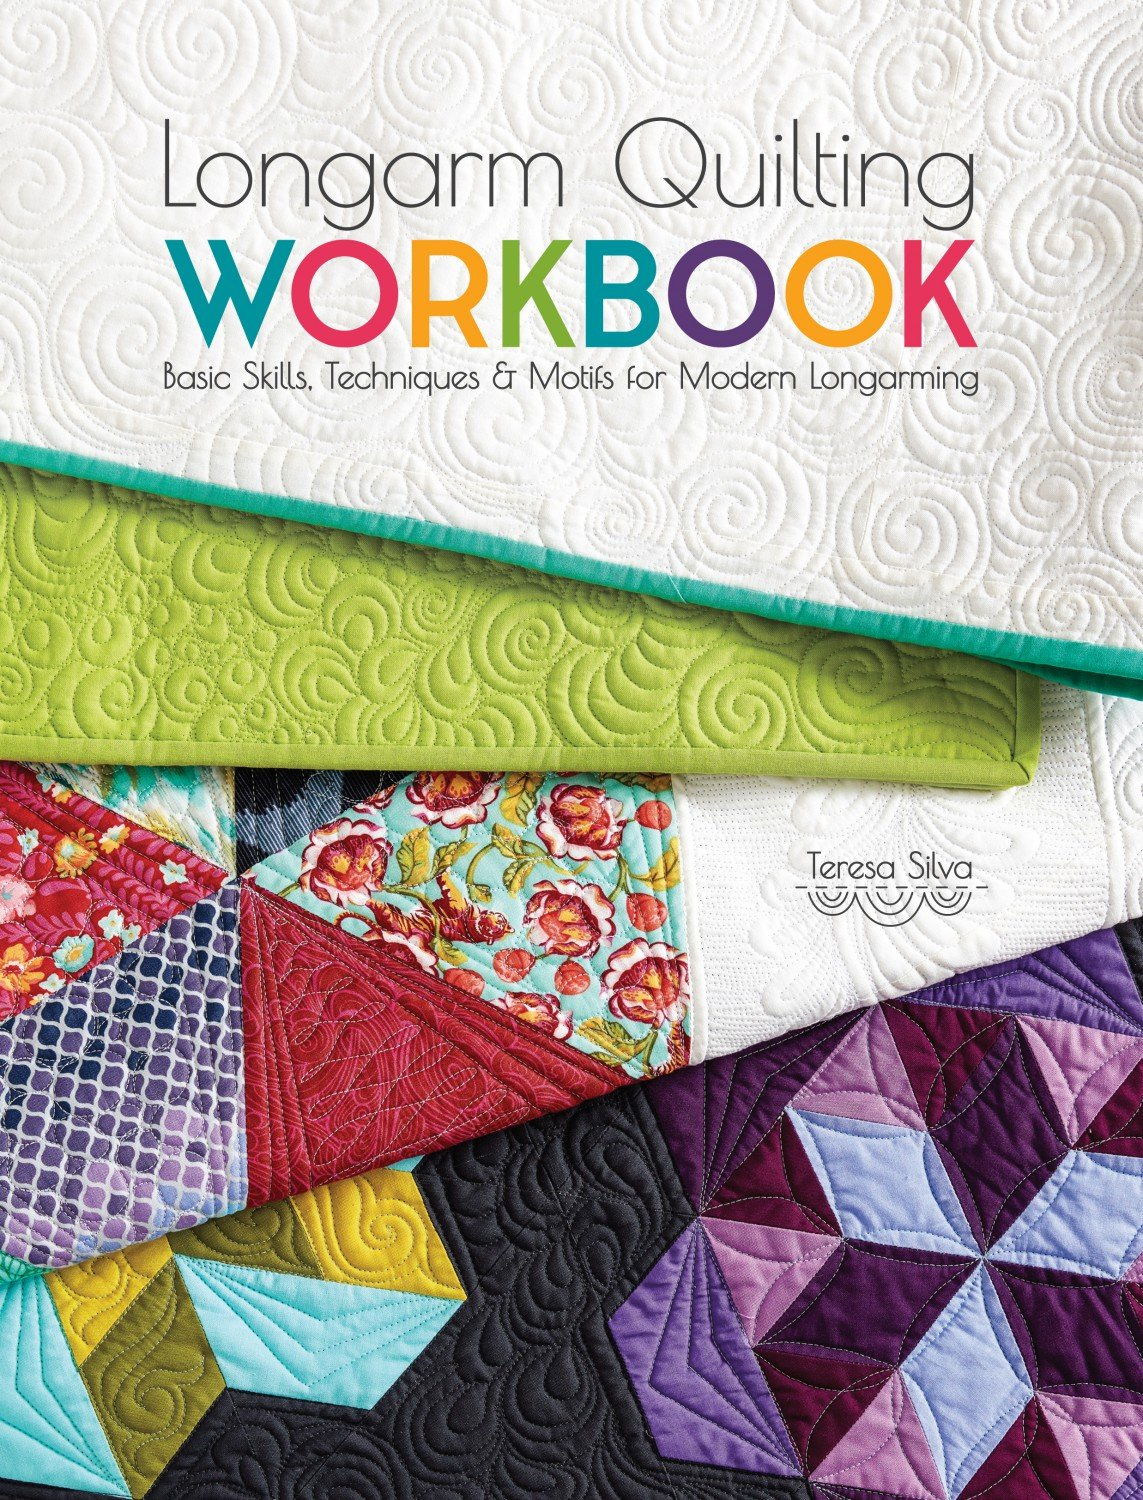 Longarm Quilting Workbook: Basic Skills, Techniques & Motifs for Modern Longarming by Teresa Silva